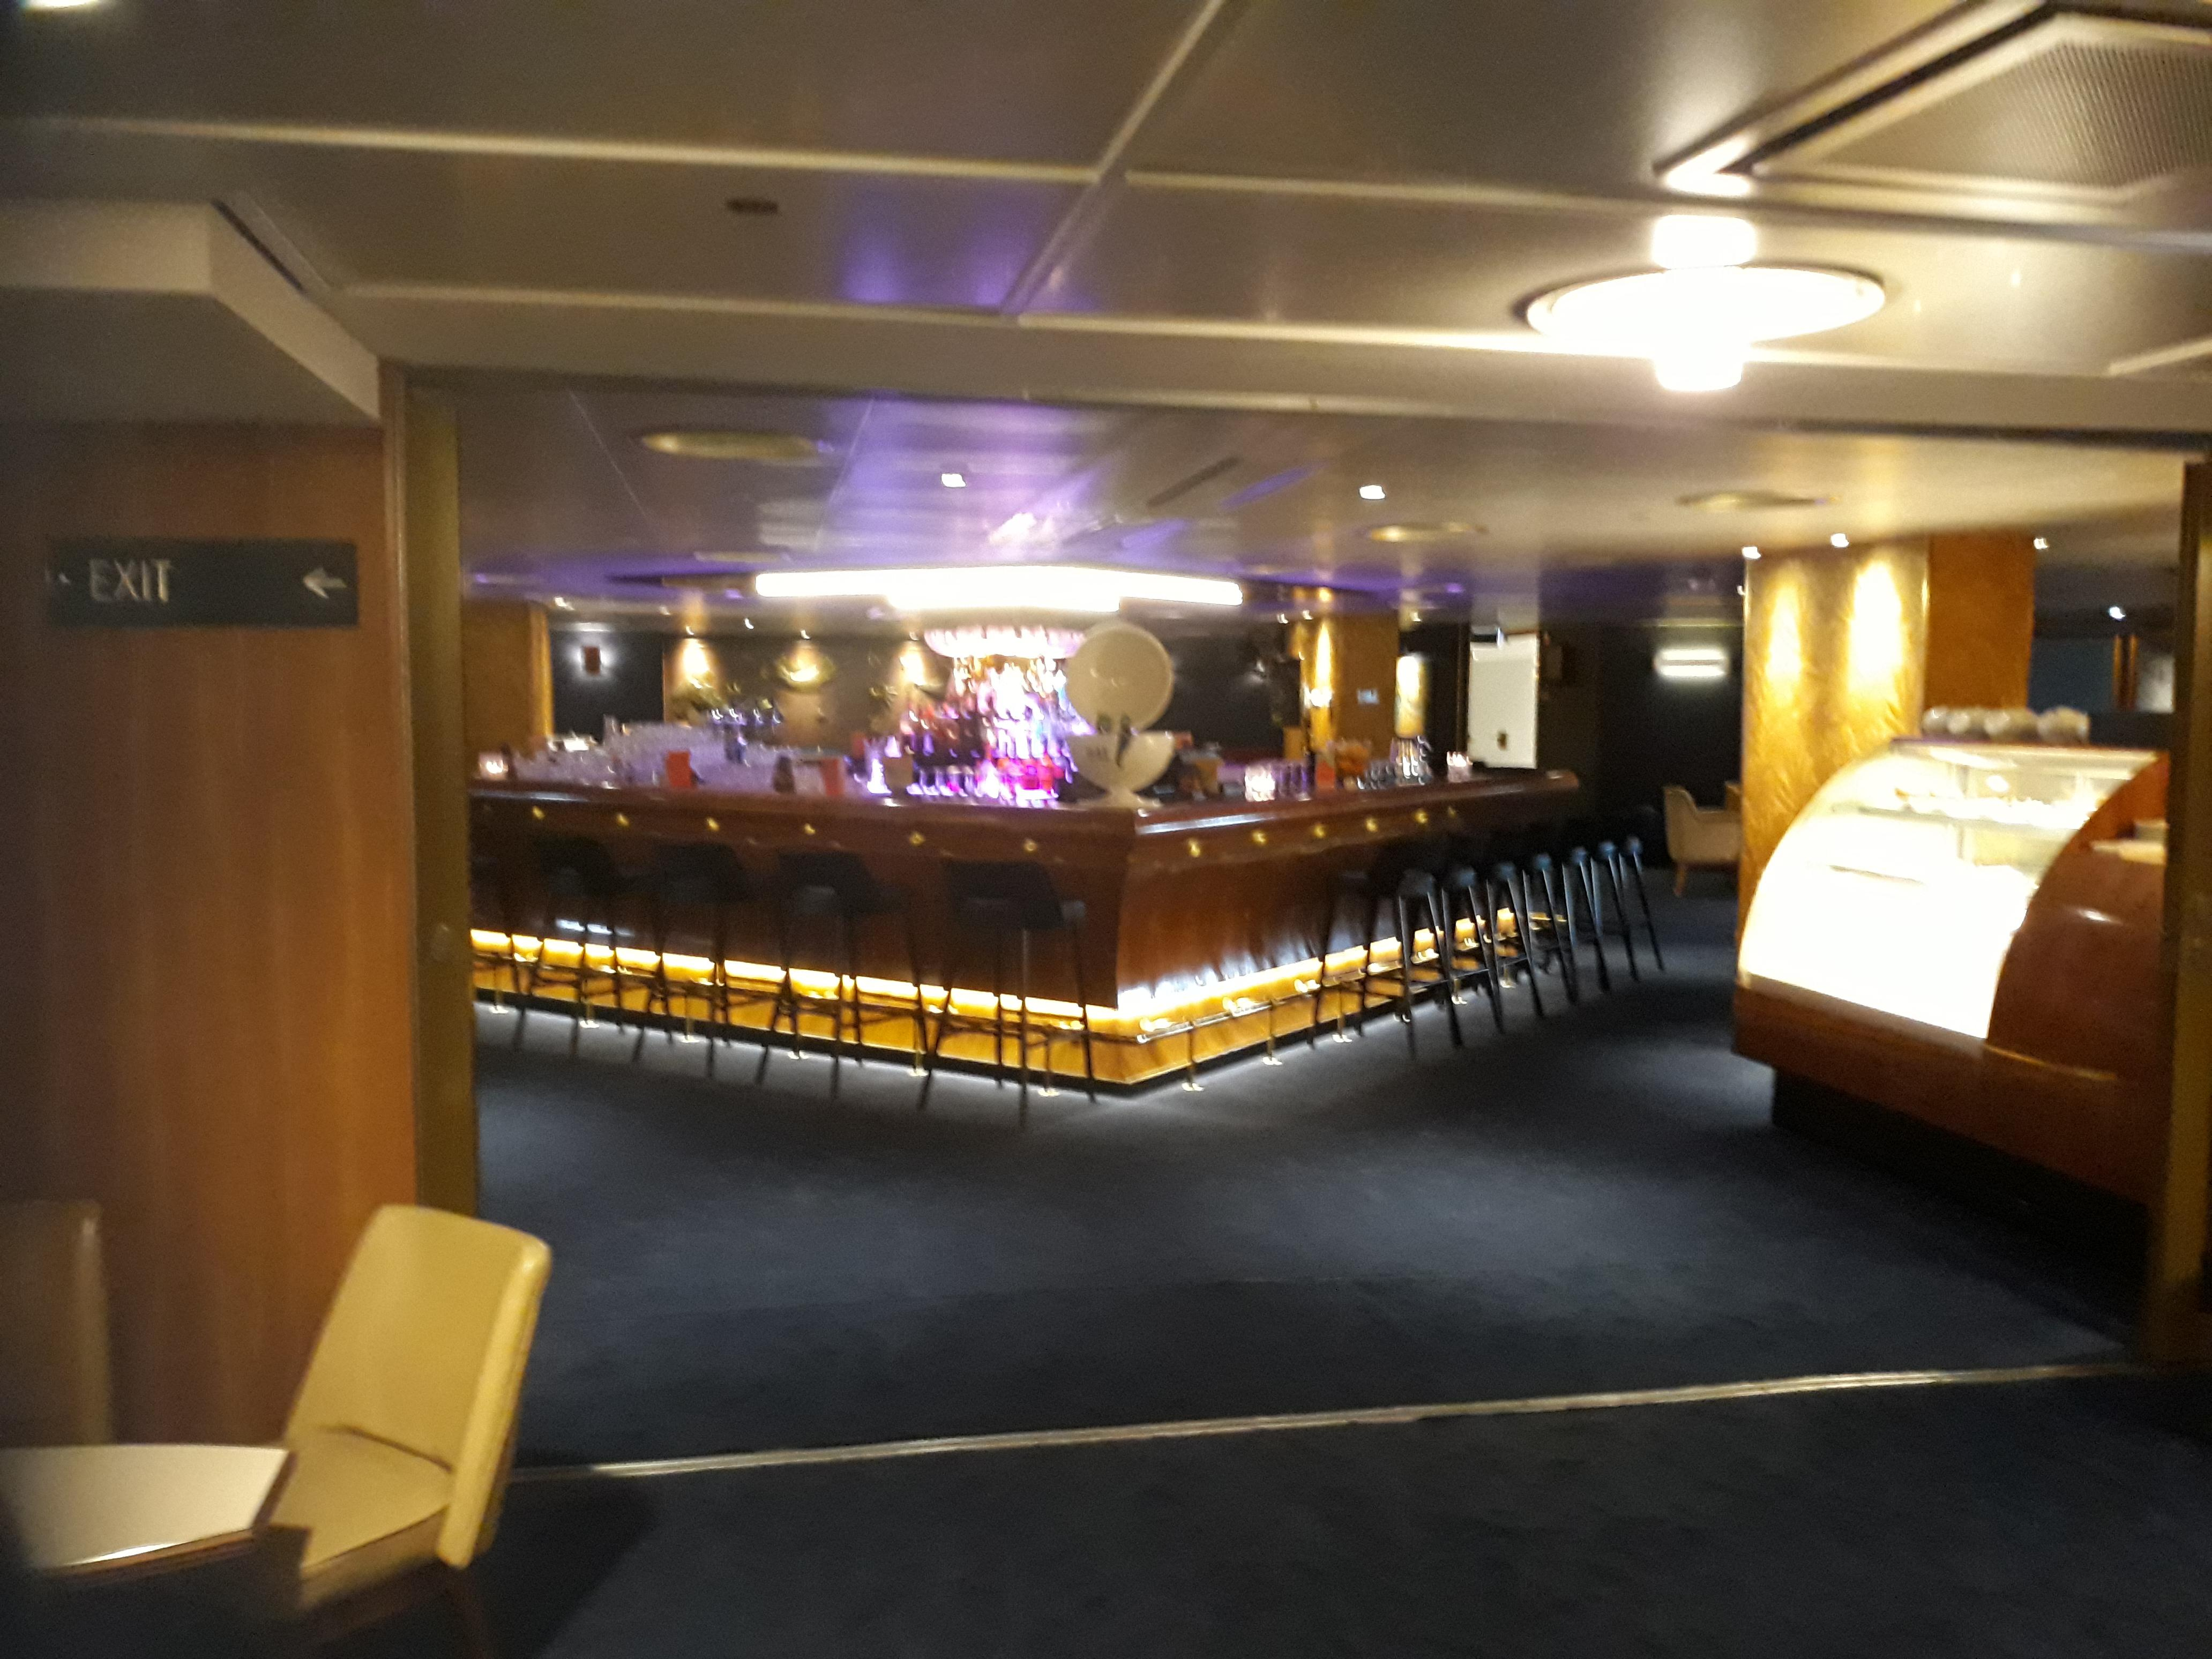 A great place to enjoy a Gin and tonic on the SS Rottetdam